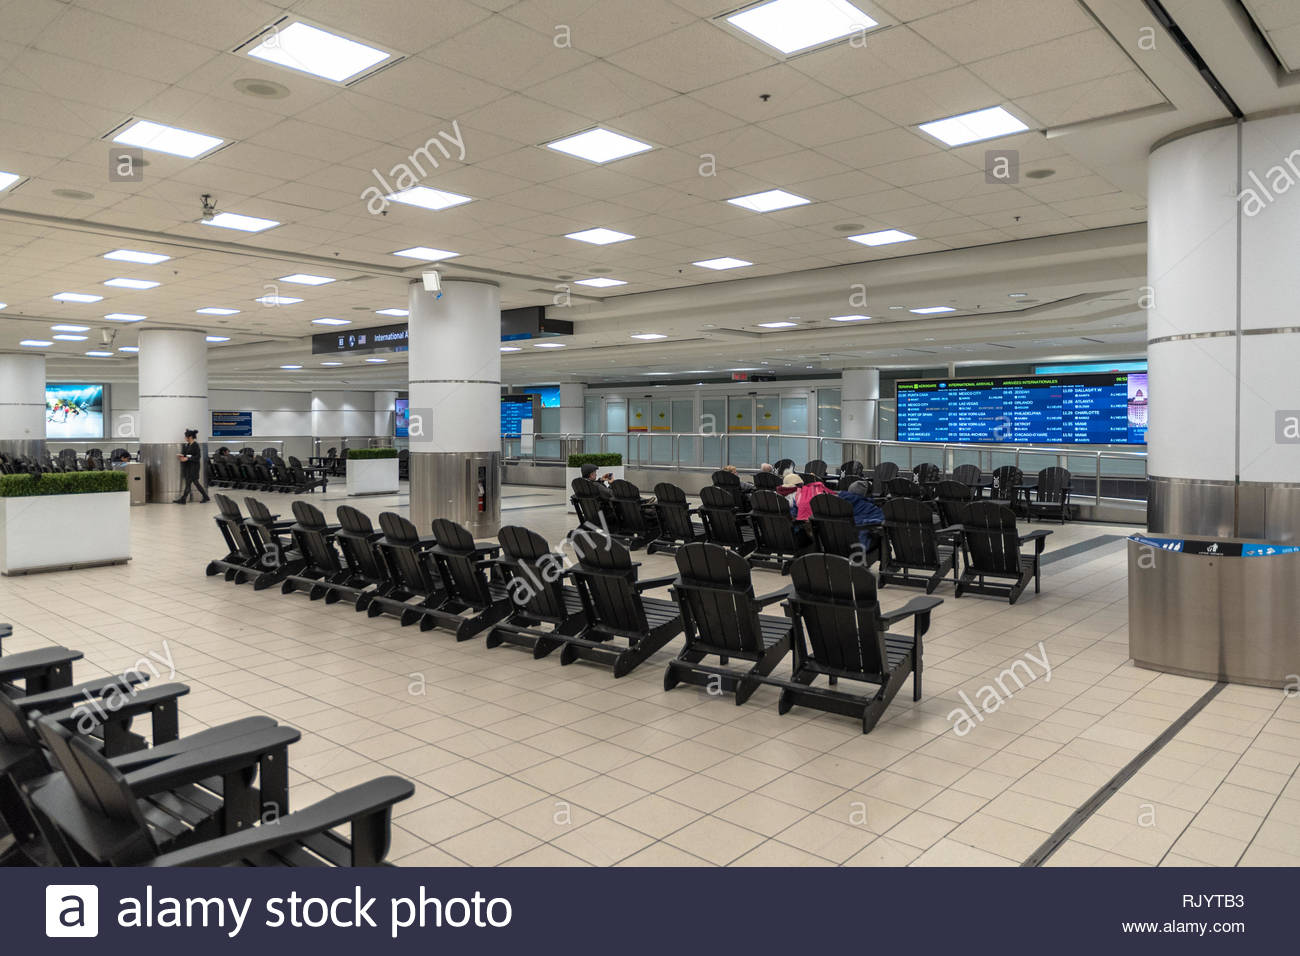 Pearson International Airport. Indoors at the arrival area of Terminal 3. The place is one of the busiest transportation hubs in Canada. - Stock Image